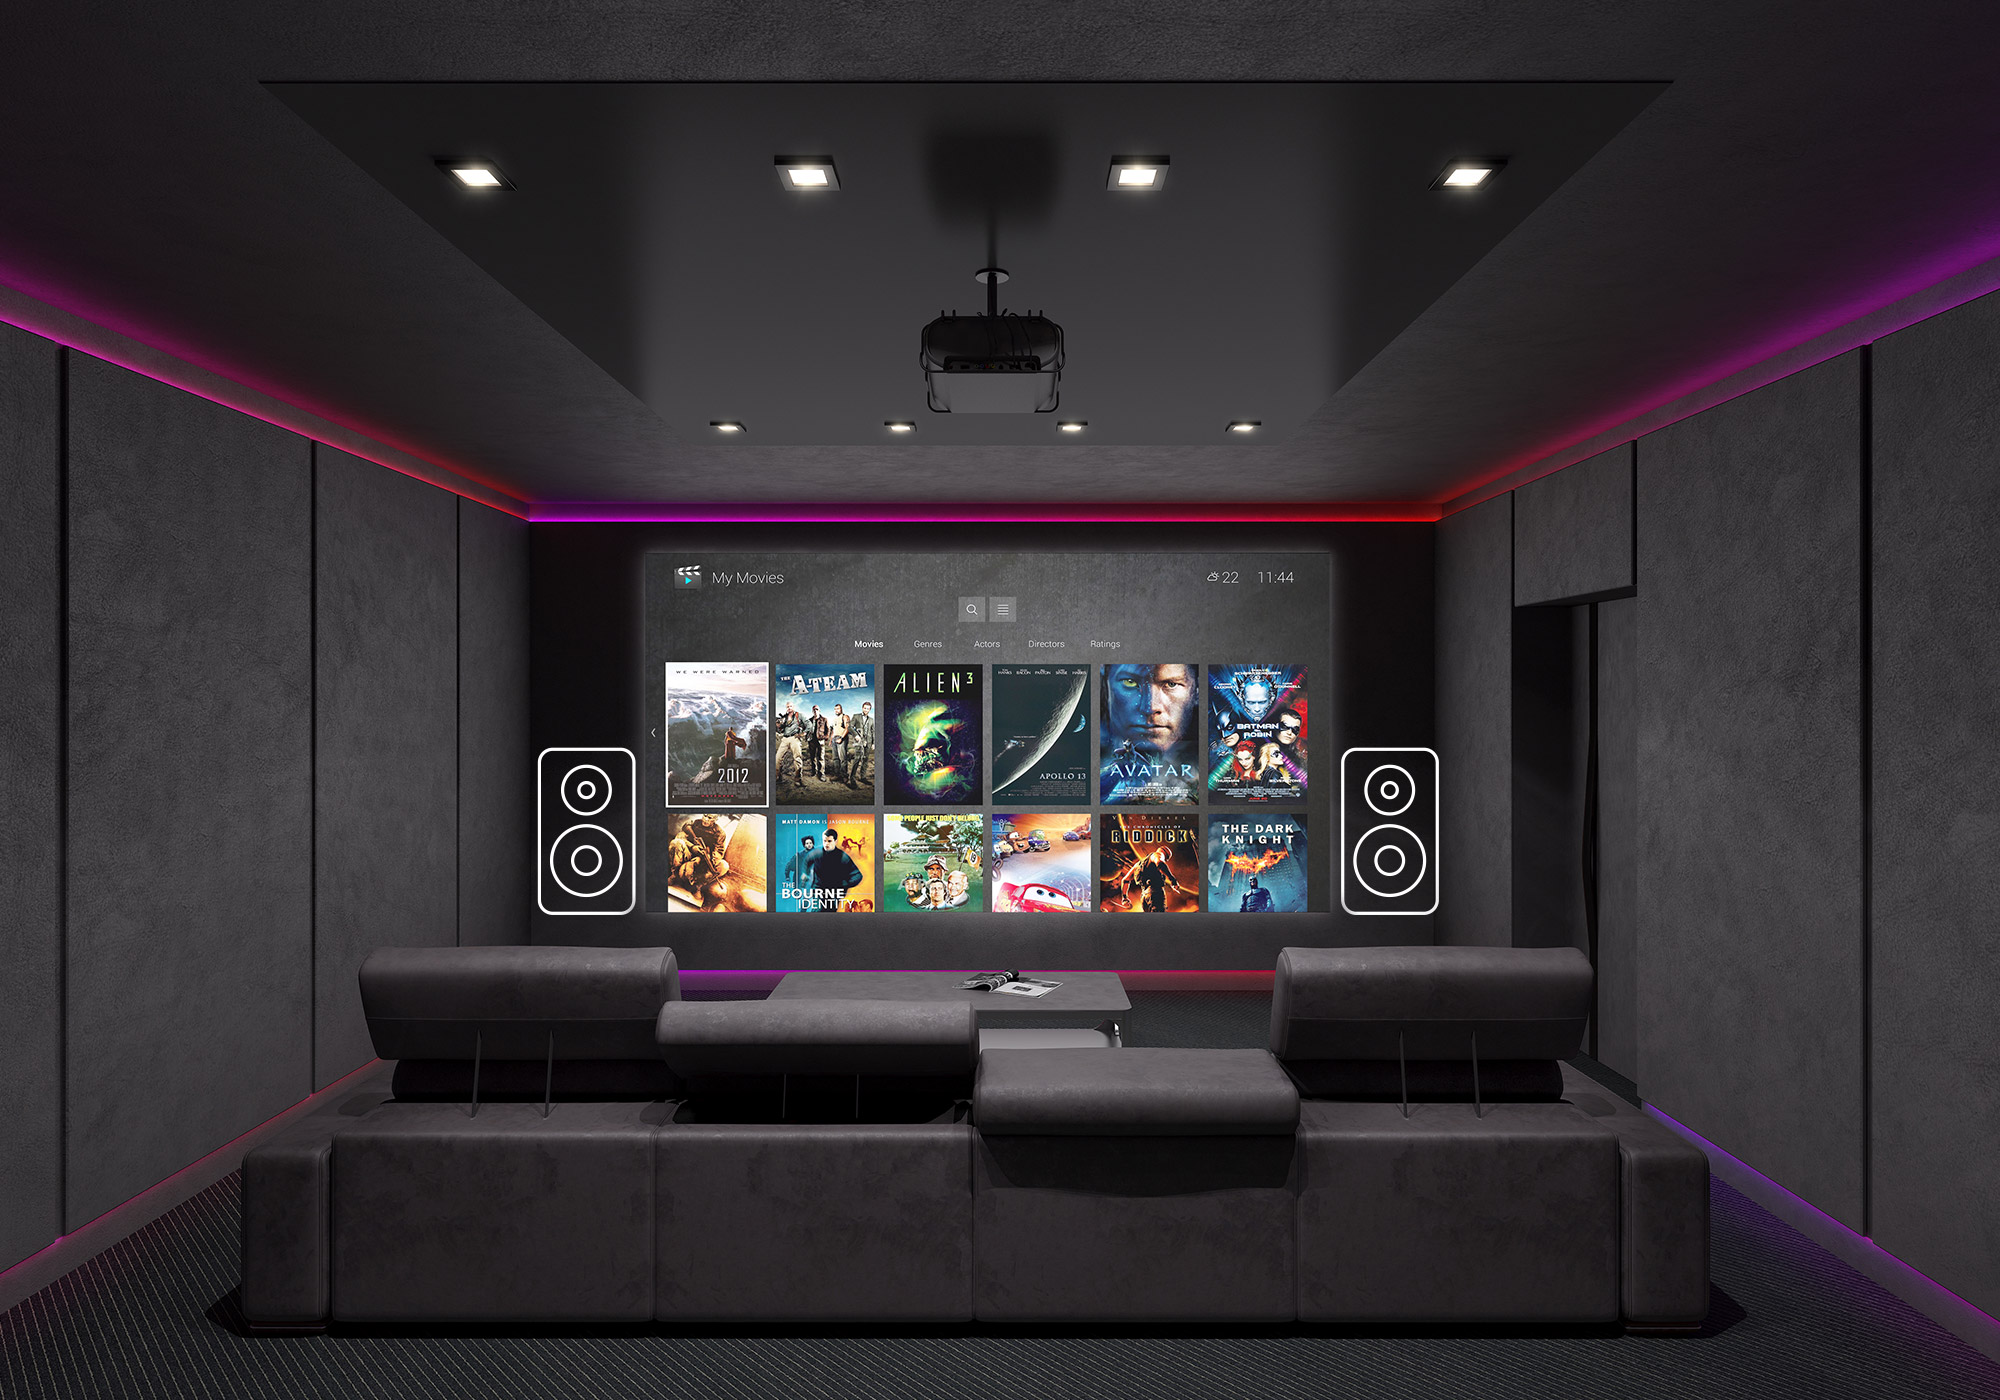 Solution Home Theater on nyc art studio design ideas, affordable home ideas, bedroom design ideas, surround sound design ideas, home audio design ideas, bar design ideas, home cinema, camera design ideas, education design ideas, whole house design ideas, security design ideas, wine cellar design ideas, home entertainment, two-story great room design ideas, internet design ideas, speaker design ideas, family room design ideas, media room design ideas, pool table design ideas, school classroom design ideas,